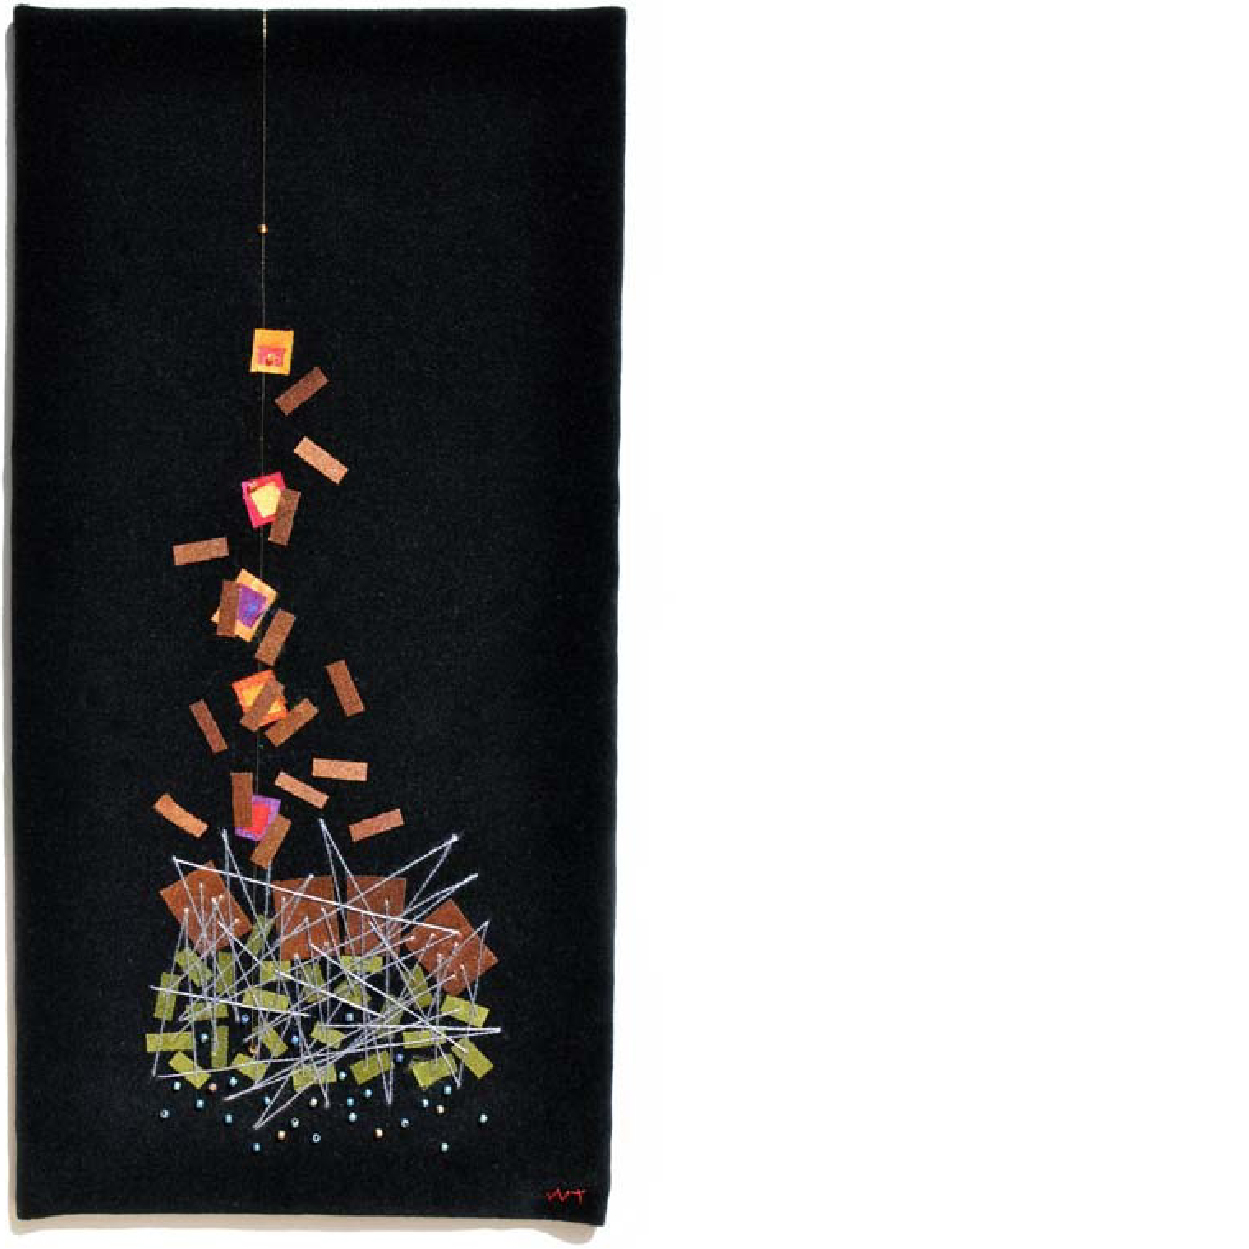 ESCAPE , 2005  Hand-dyed silks, velveteen, thread, beads, hand quilted